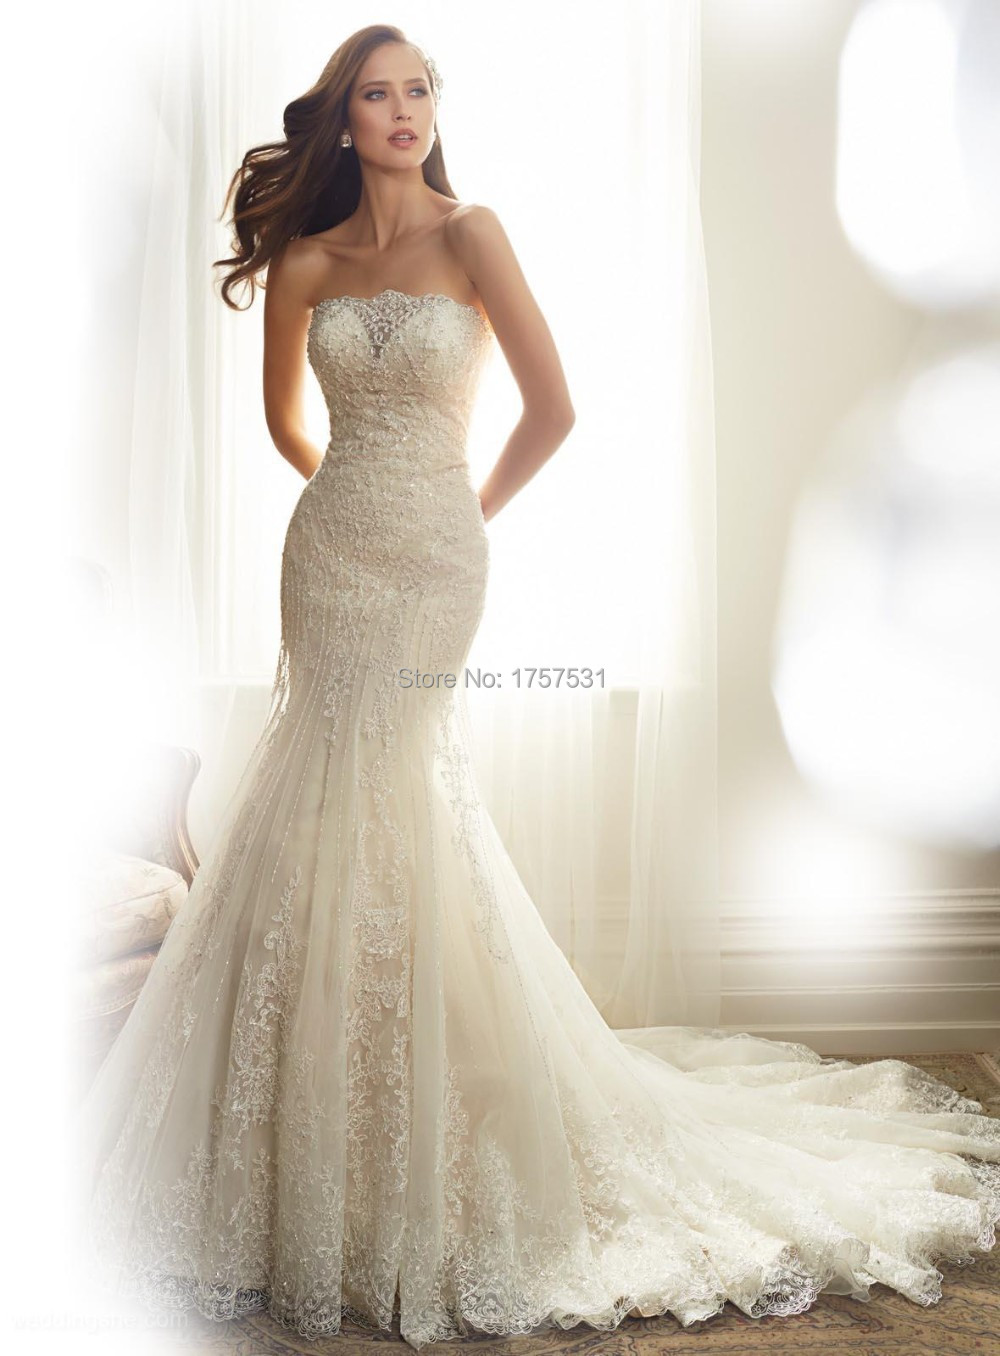 Charming 2015 WhiteIvory Elegant Mermaid Wedding Dress With Strapless Sleeveless Beading Lace